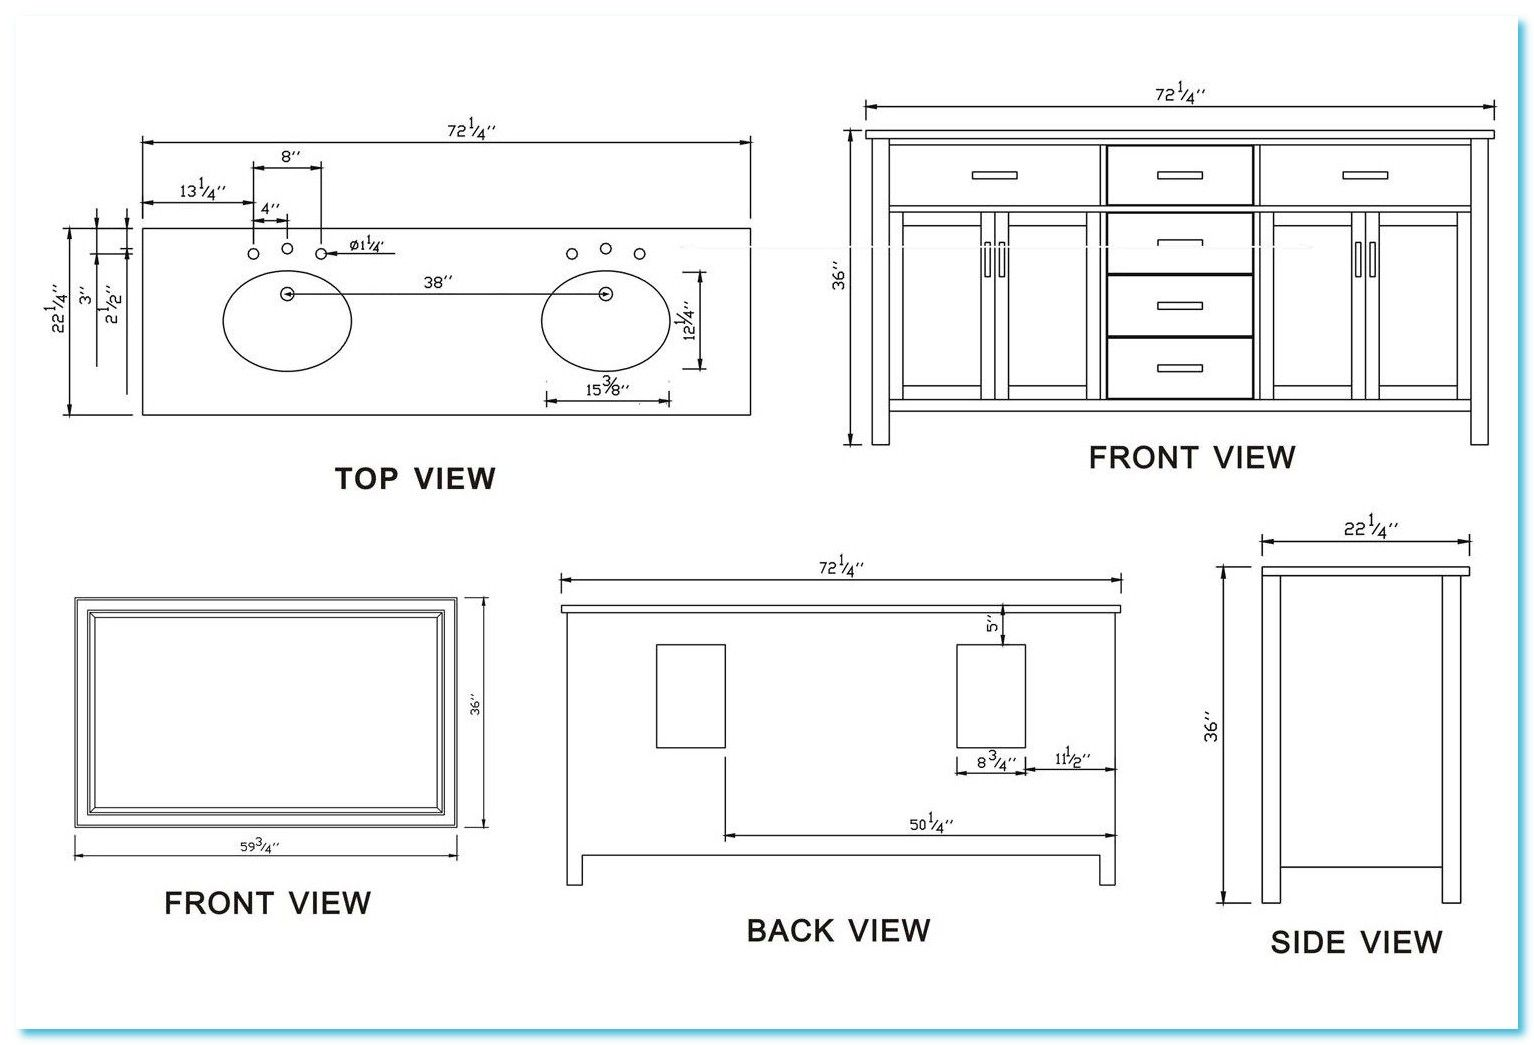 72 Reference Of Standard Kitchen Sink Cabinet Size In 2020 Bathroom Vanity Sizes Bathroom Design Small Small Bathroom Layout